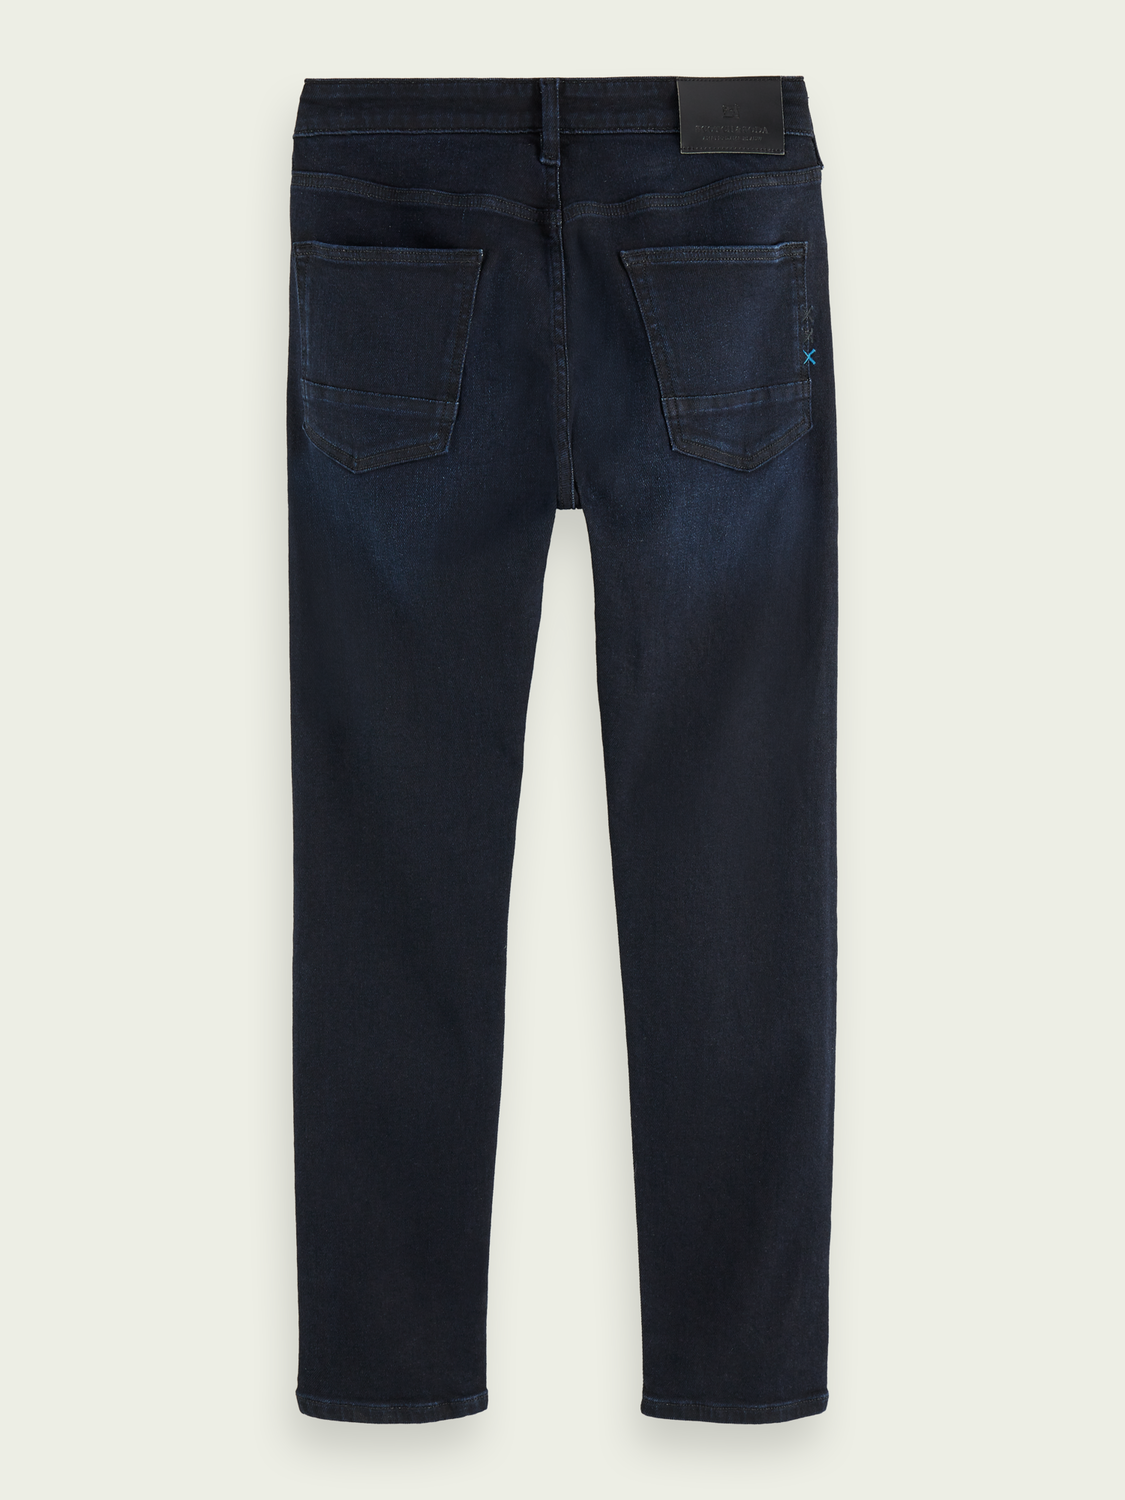 Herrar Ralston - Ready To Go | Jeans med slim fit